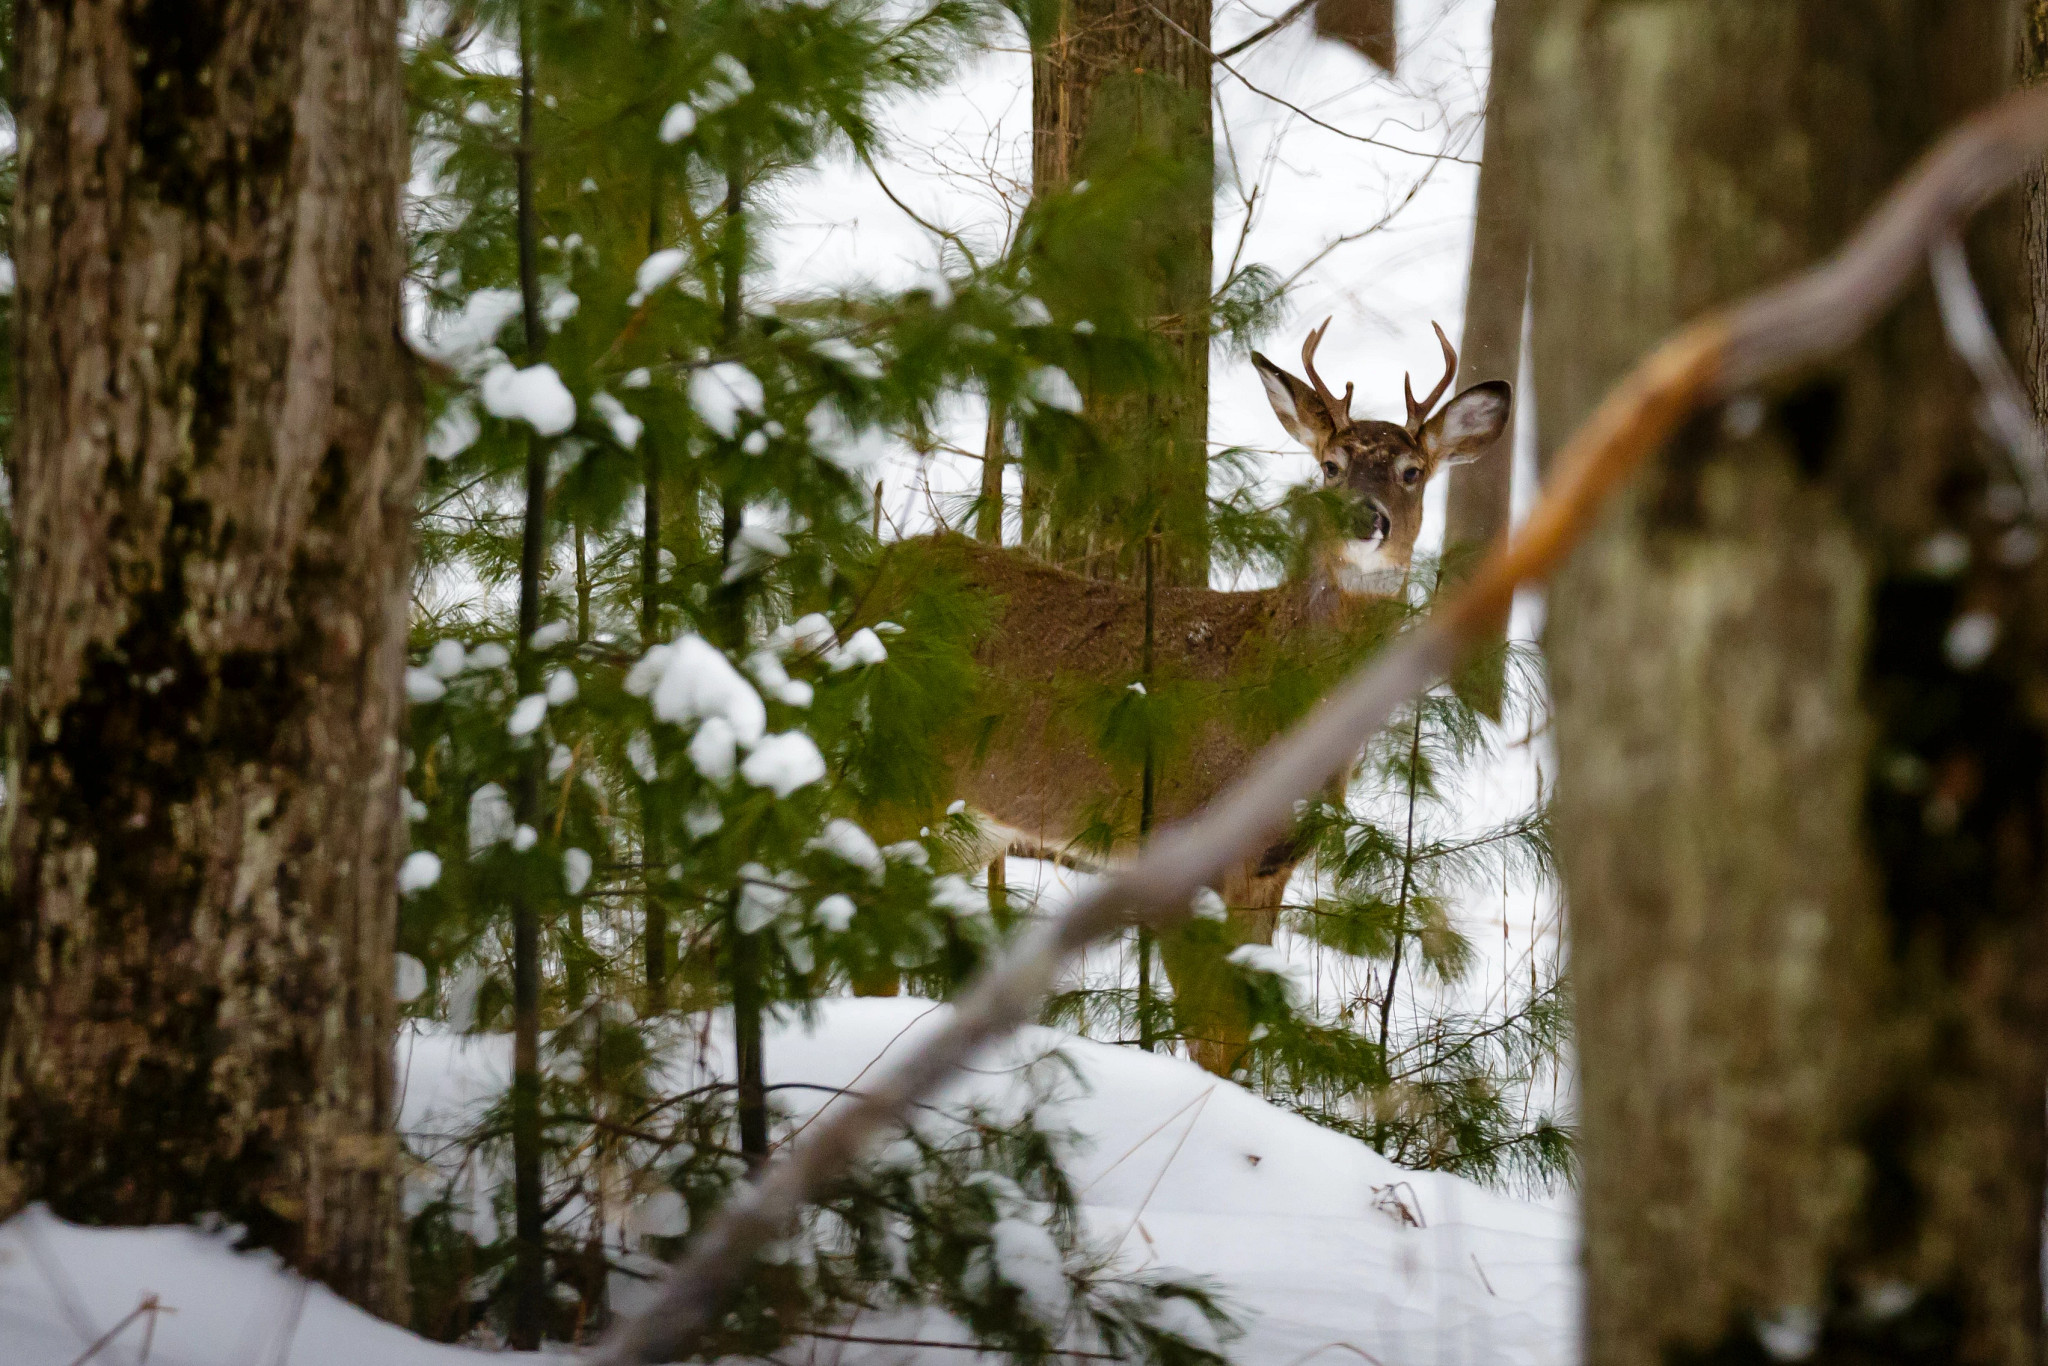 A whitetail buck peers through the woods on a snowy day.